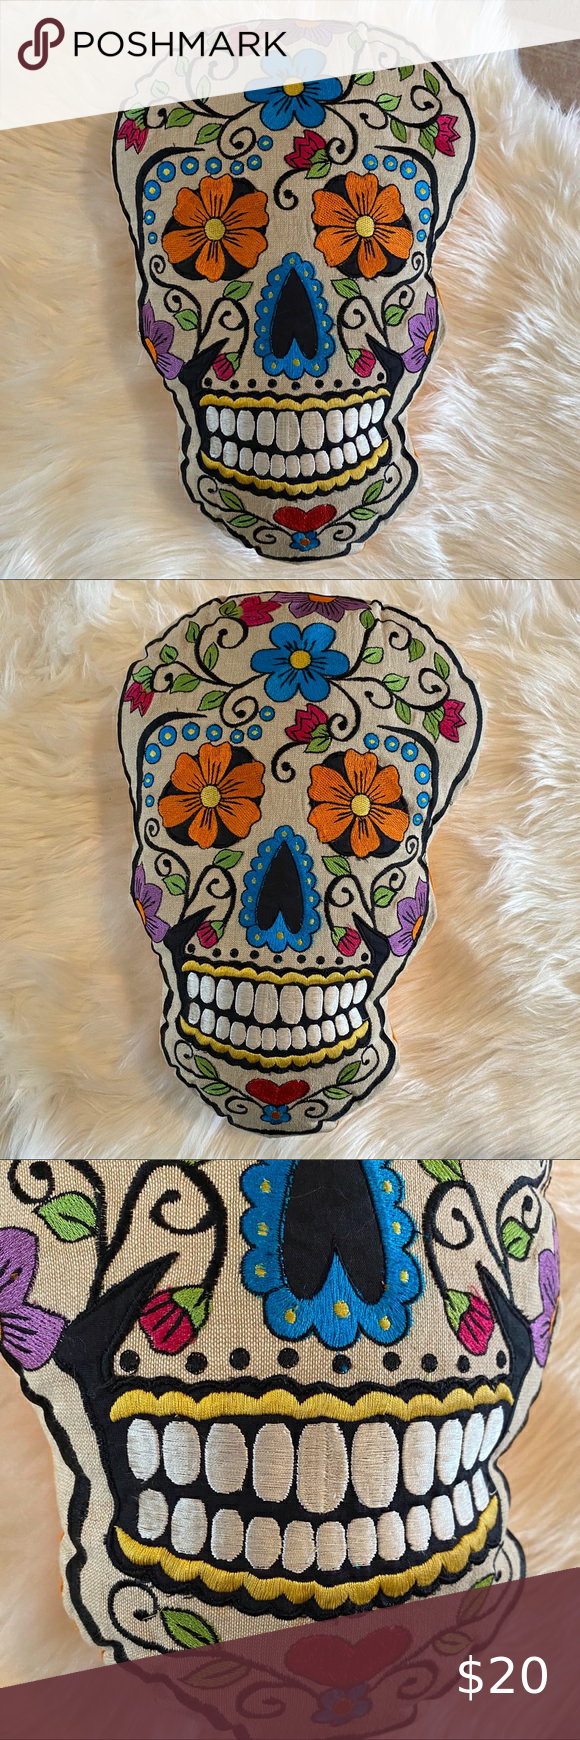 Karma Halloween 2020  KARMA LIBING SUGAR SKULL THROW PILLOW | HALLOWEEN in 2020